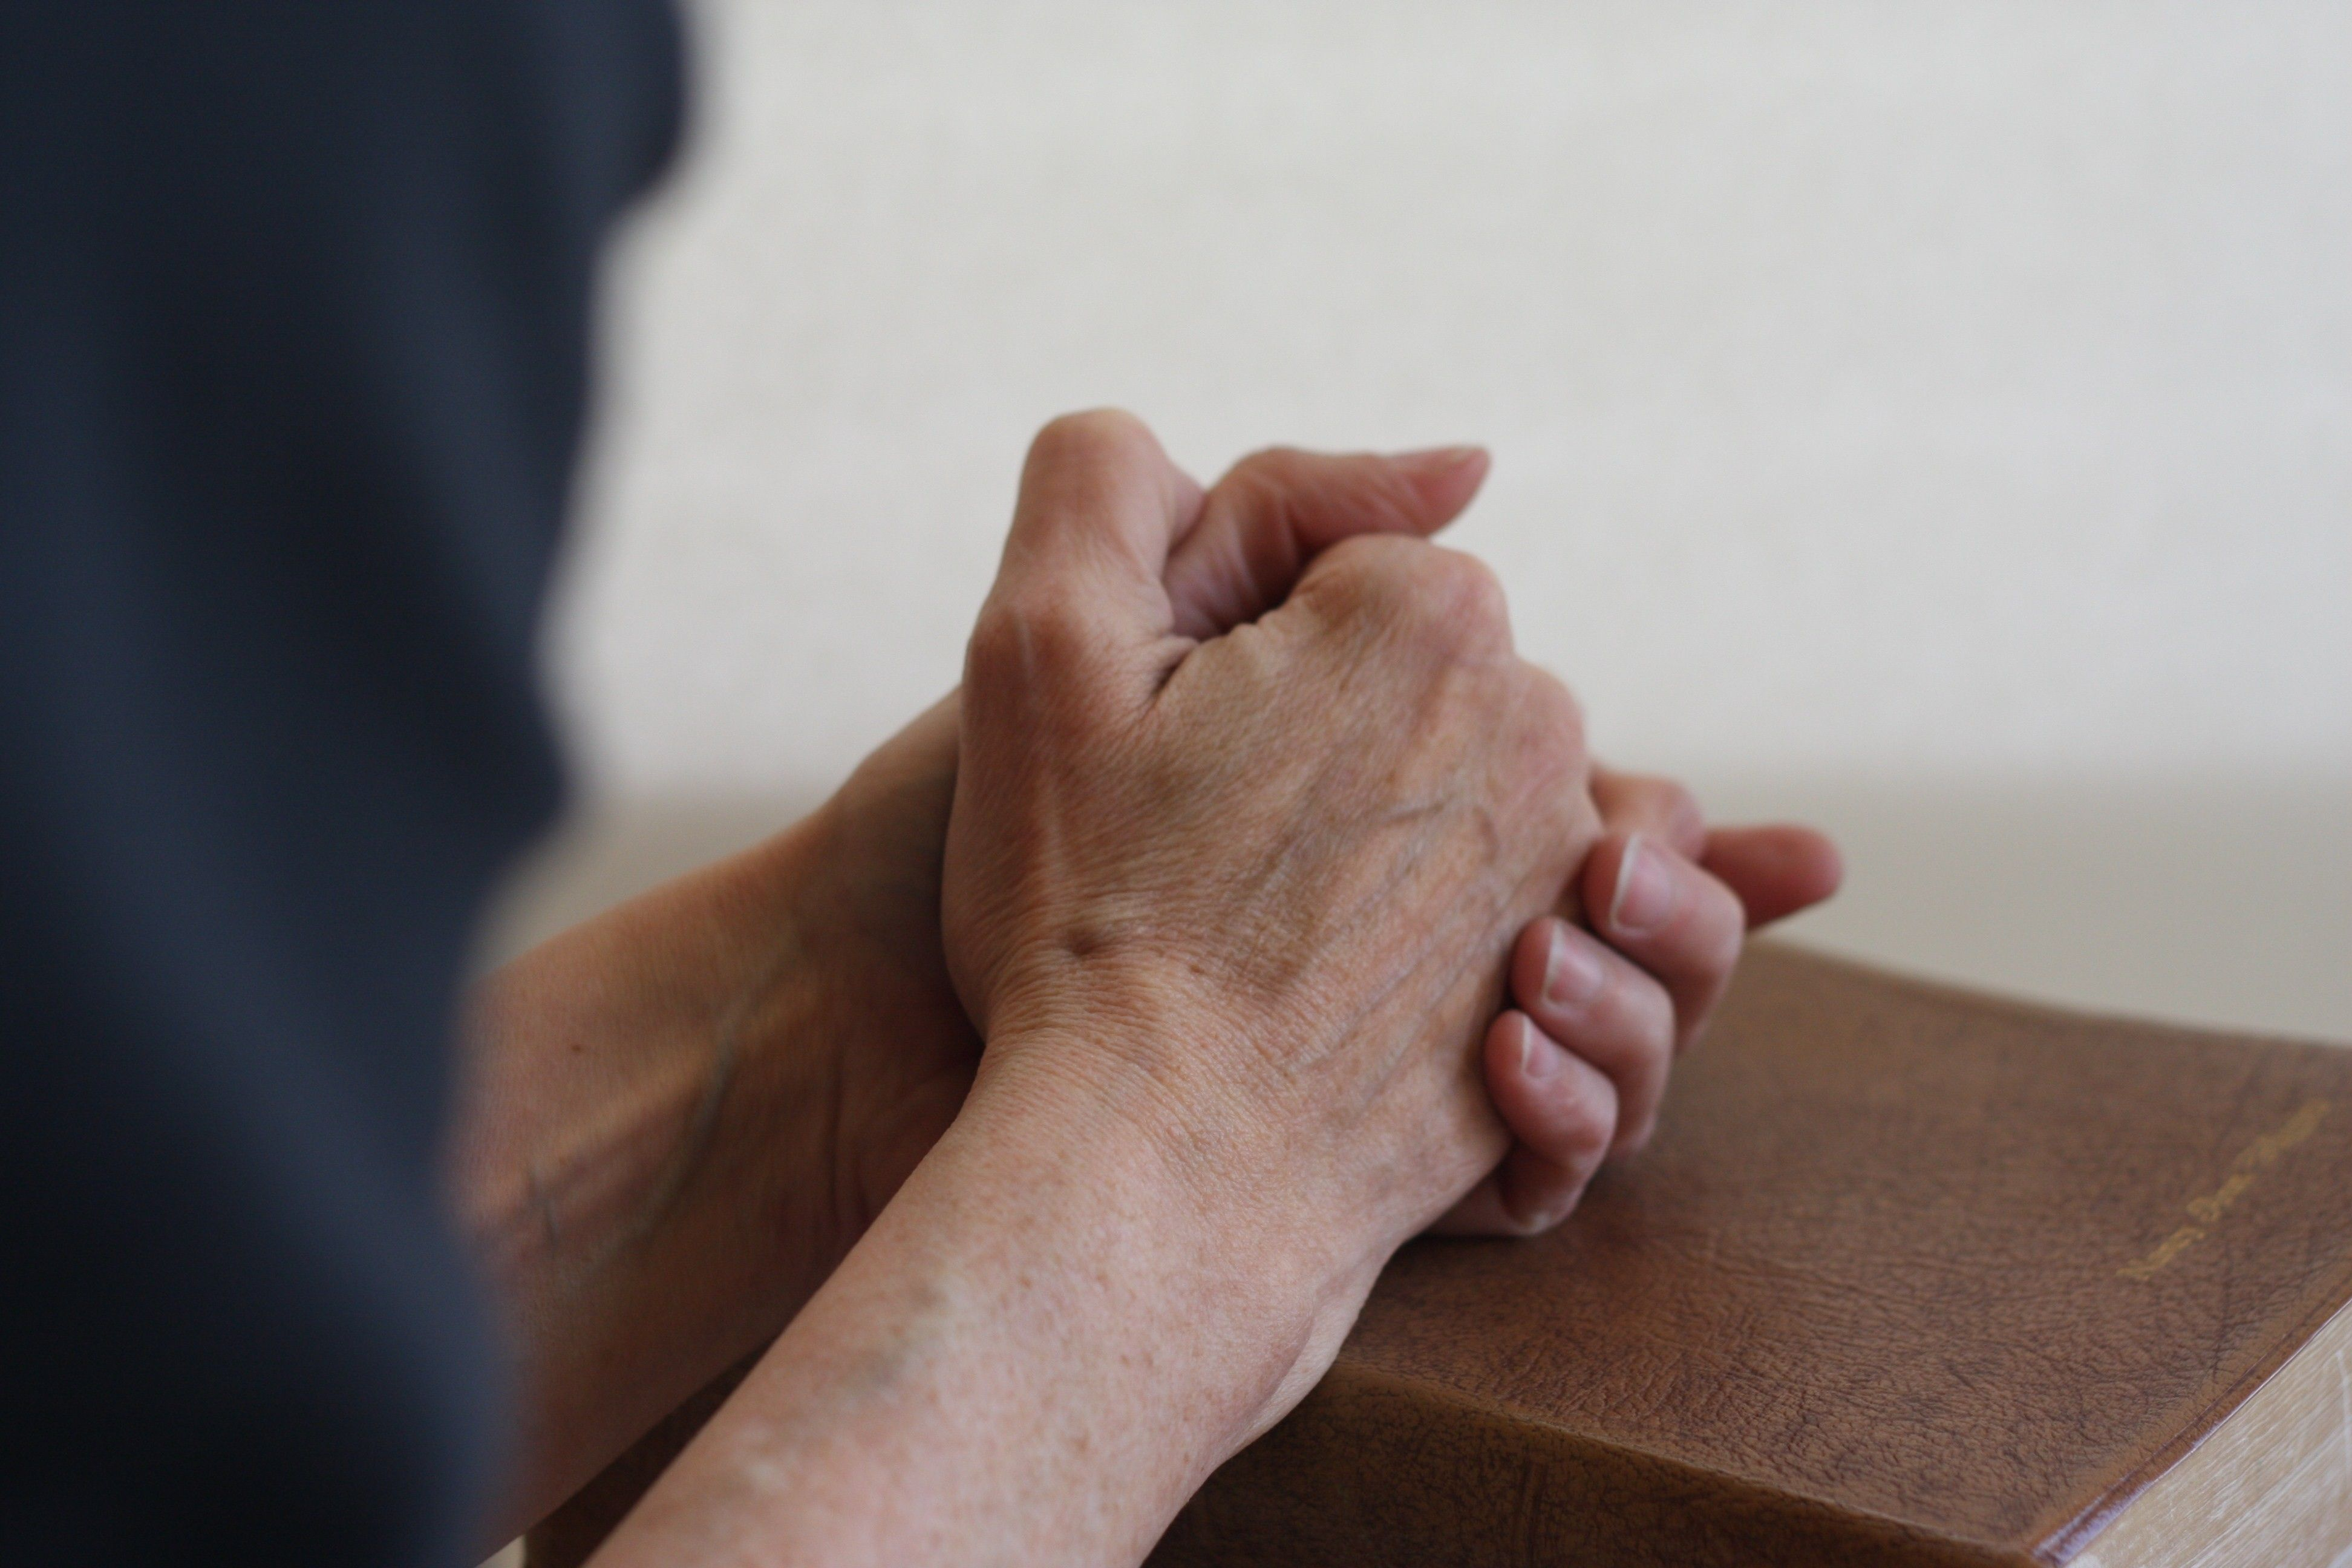 A person prays with clasped hands.